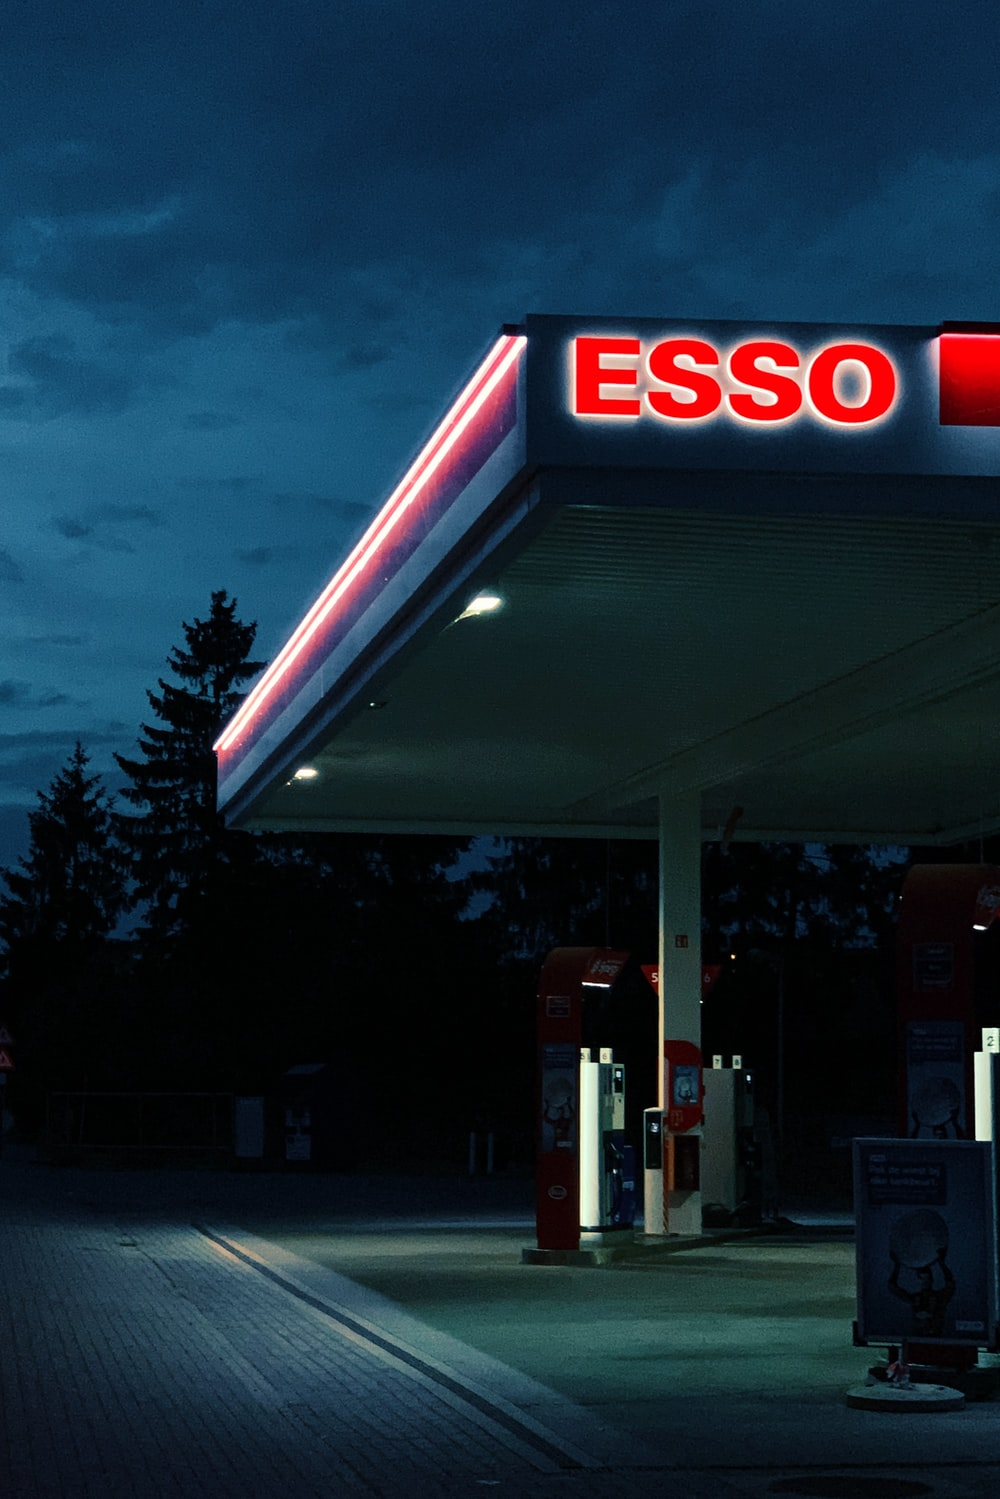 Esso gas station during night